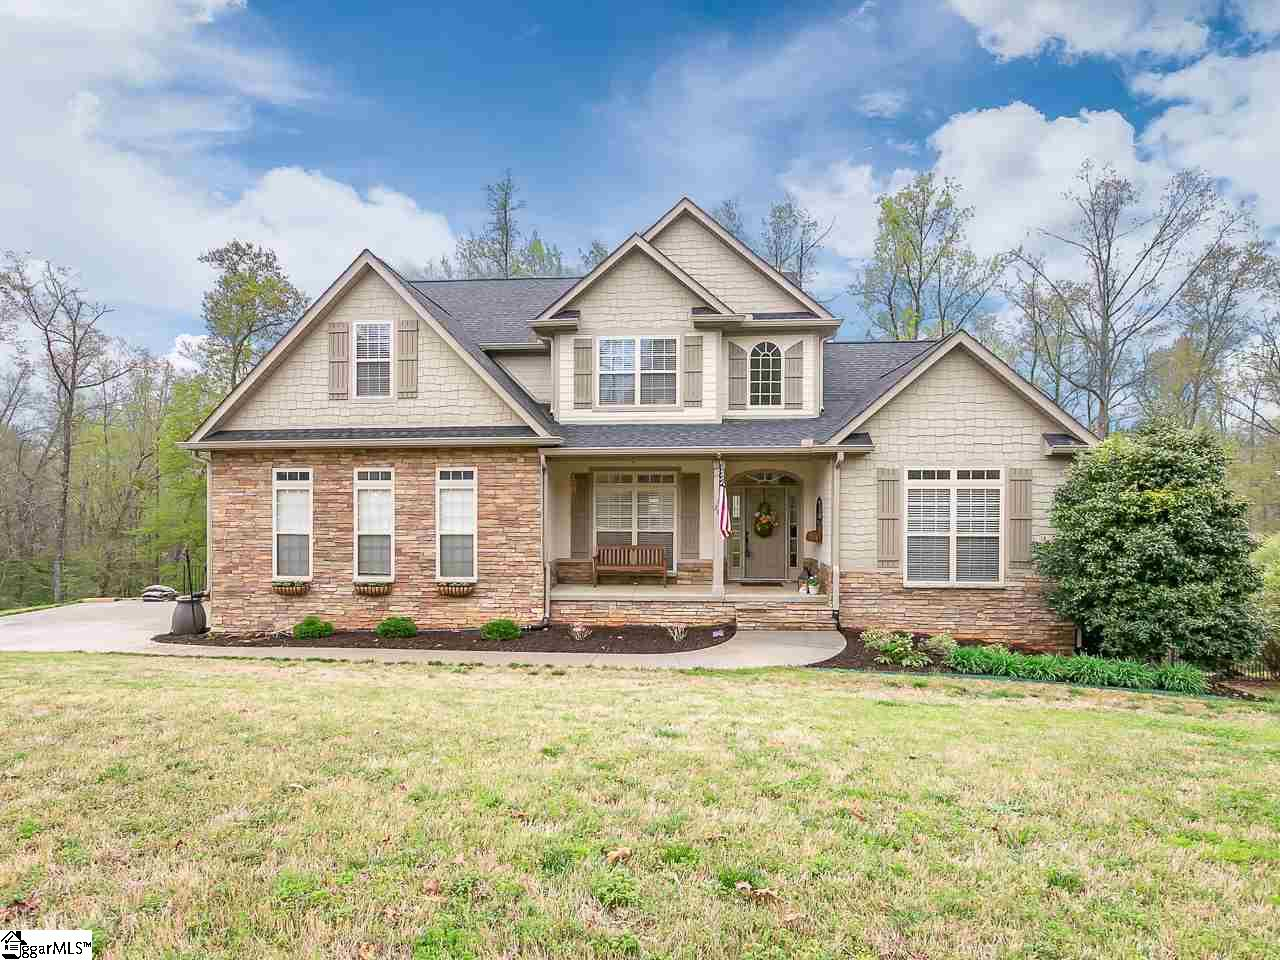 205 Pleasantwater Court Greenville and Spartanburg Home Listings - Joanna K Realty, Inc Real Estate